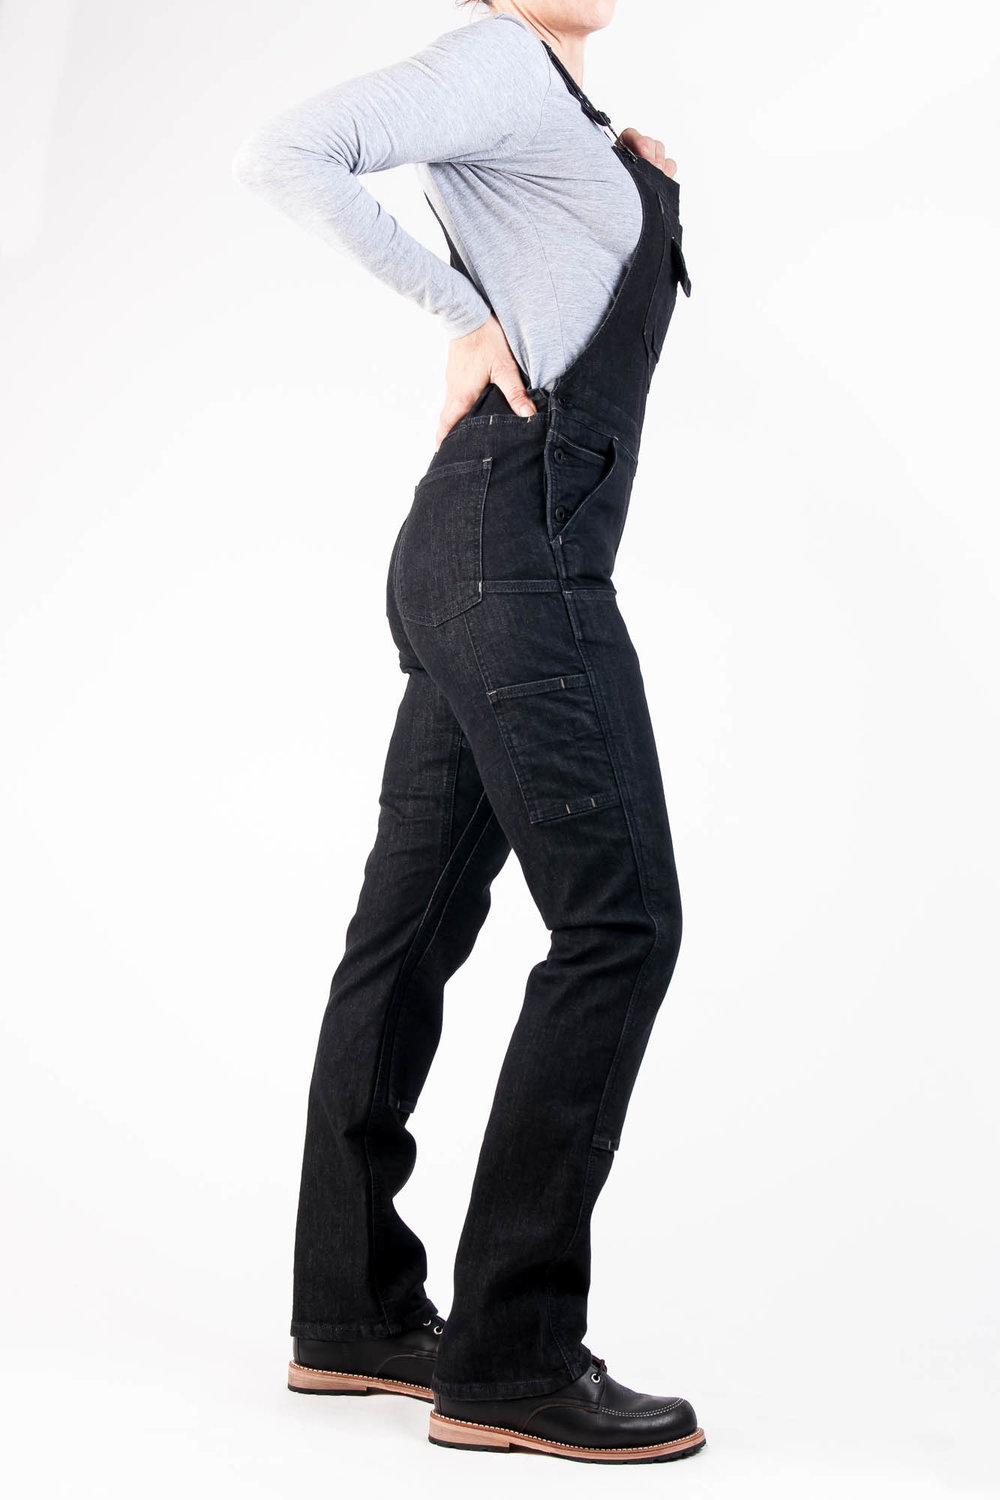 Freshley Overall Black Denim